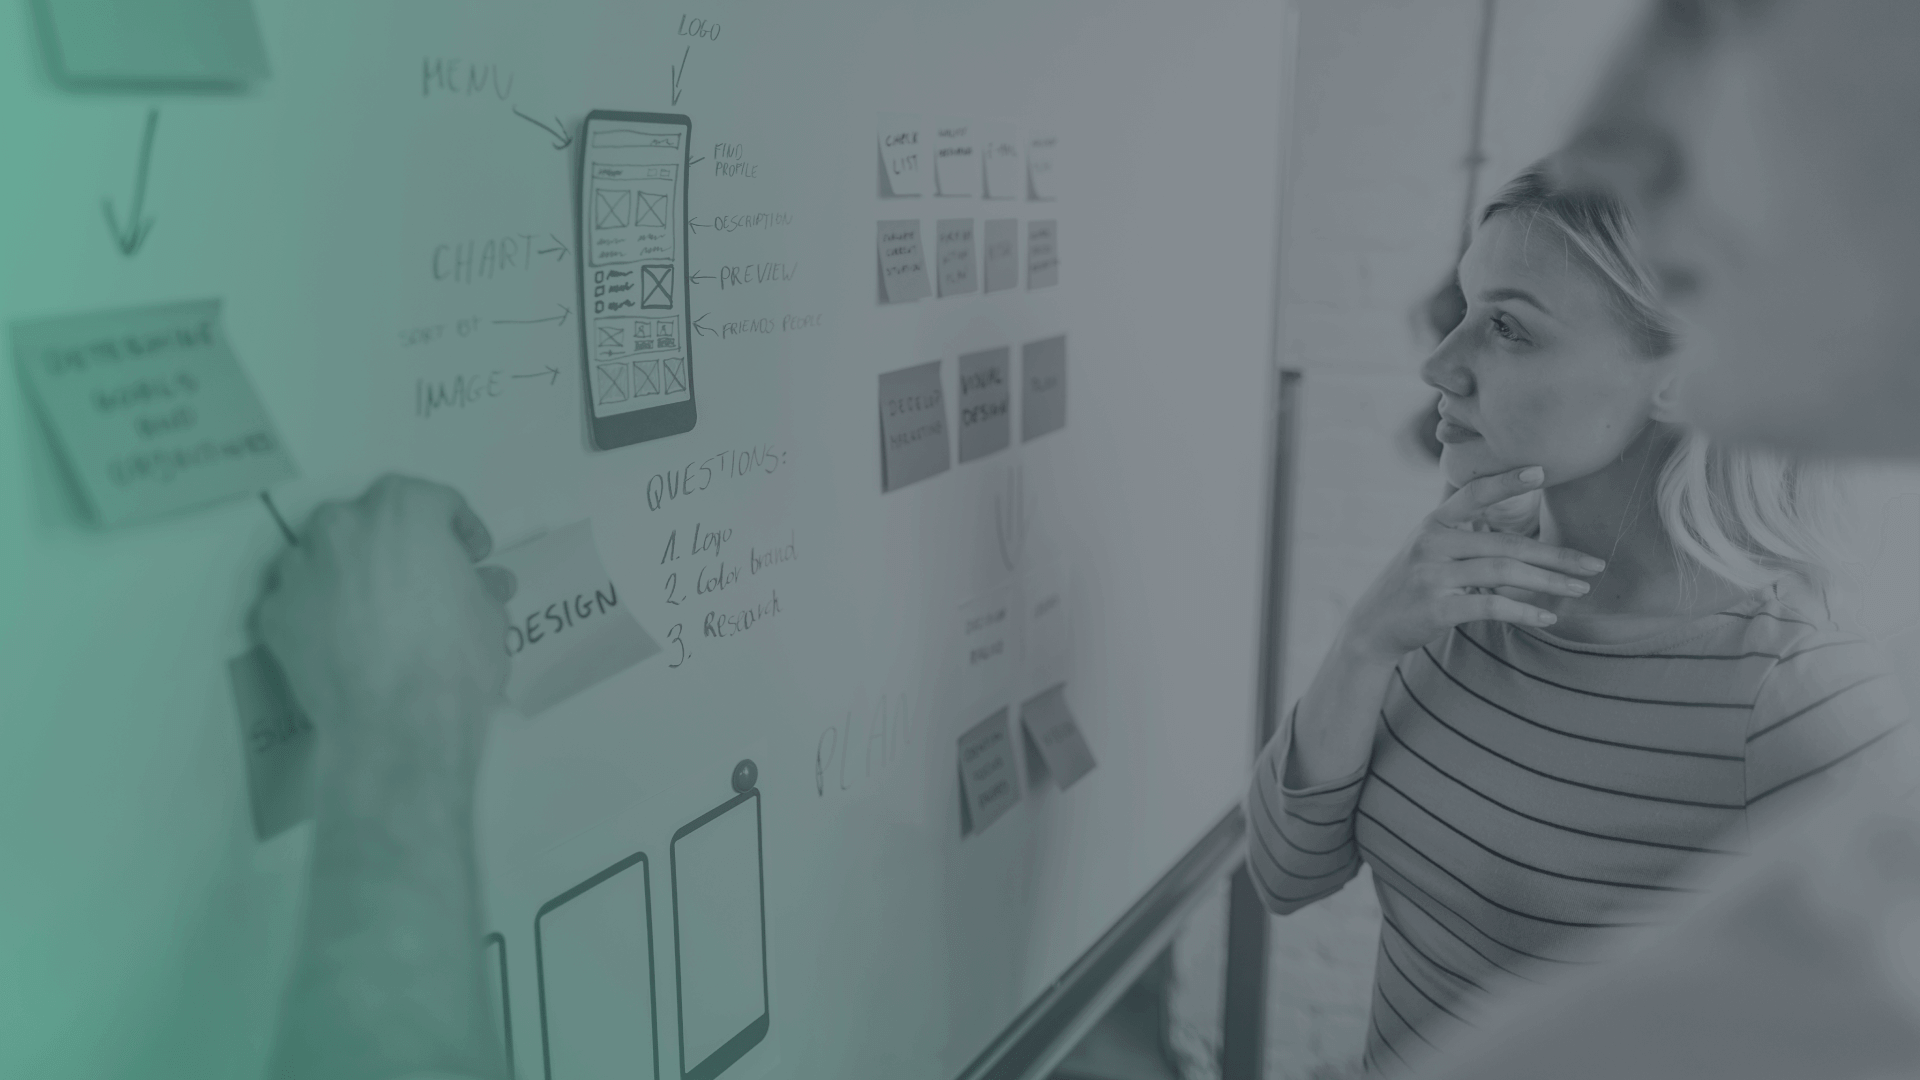 Why should UX be considered?